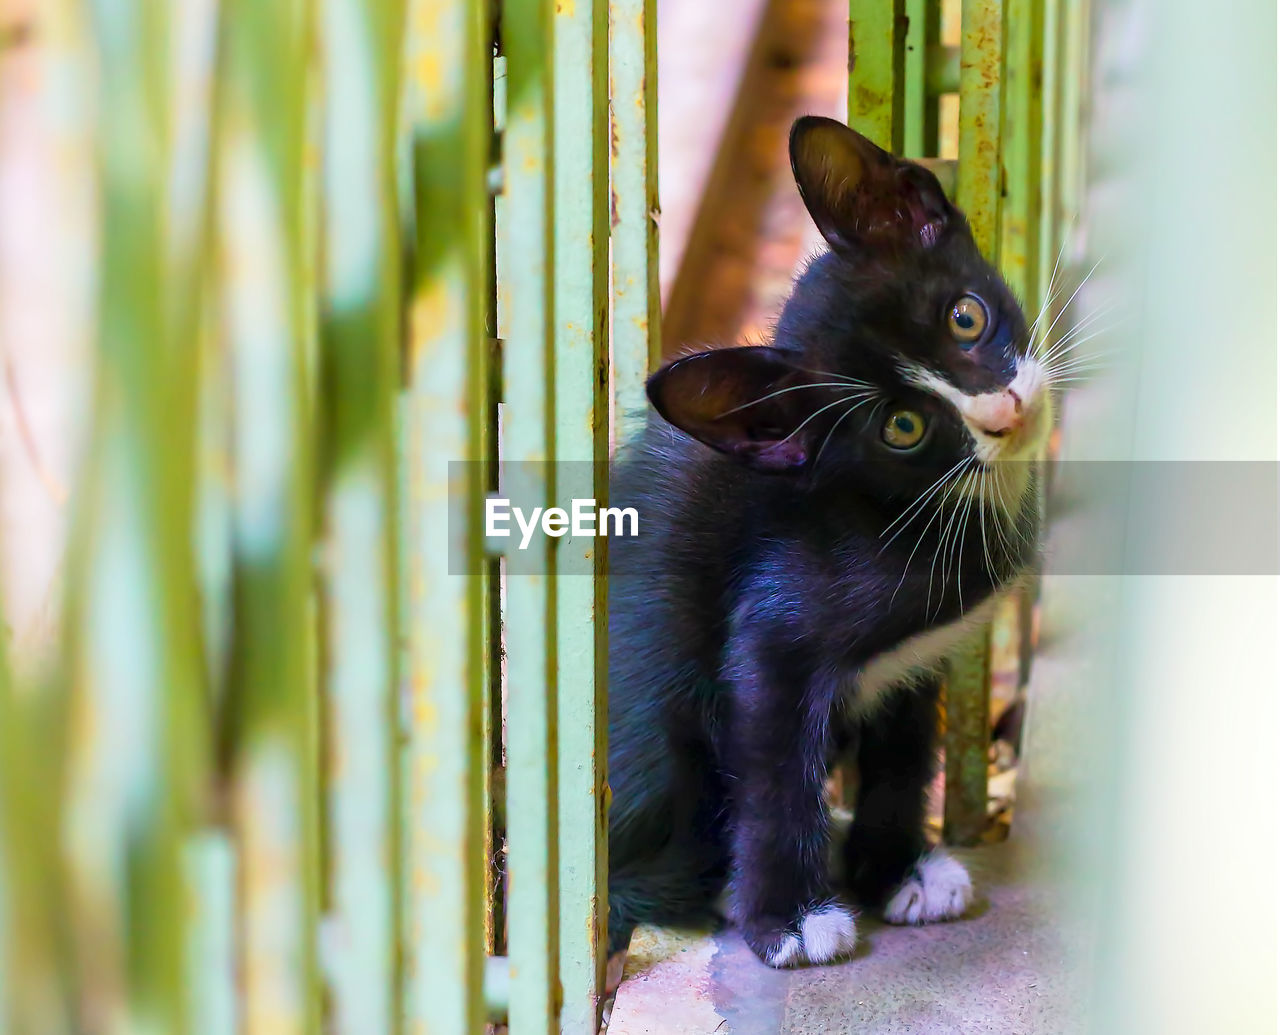 mammal, domestic, pets, domestic animals, cat, domestic cat, feline, one animal, vertebrate, no people, sitting, day, looking, selective focus, whisker, portrait, close-up, bamboo - plant